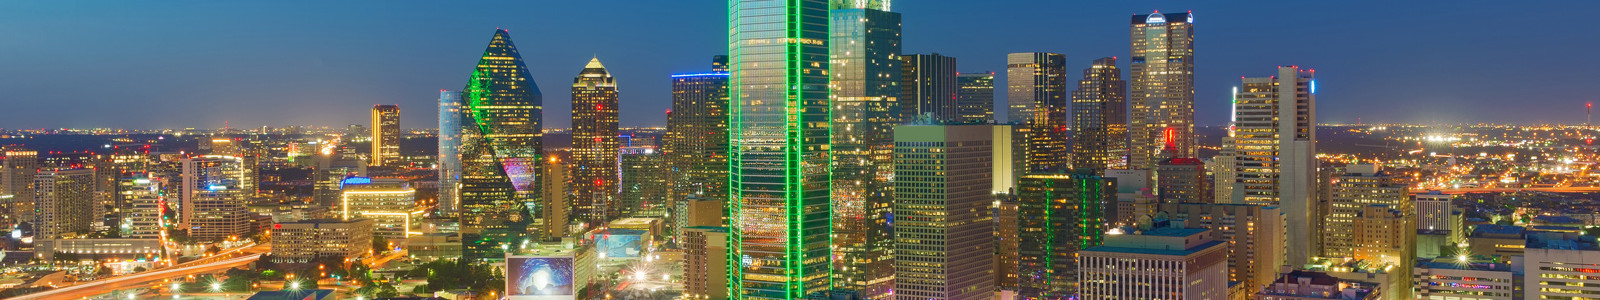 fly tucson tus to dallas fort worth dfw fly tucson tus to dallas fort worth dfw